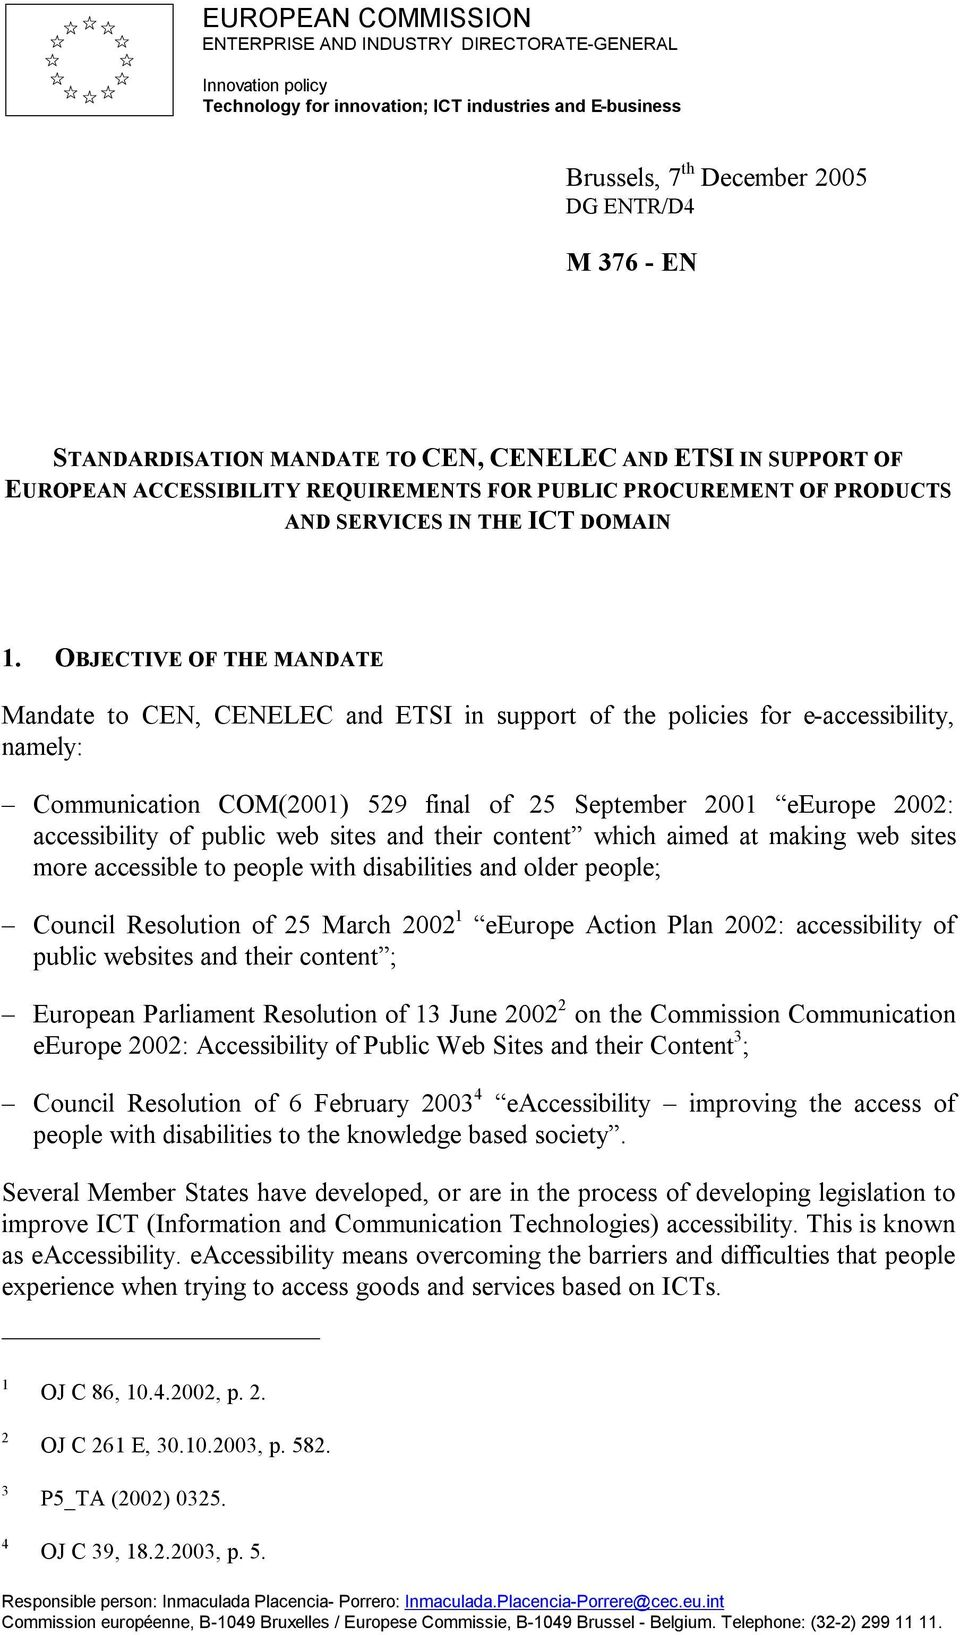 OBJECTIVE OF THE MANDATE Mandate to CEN, CENELEC and ETSI in support of the policies for e-accessibility, namely: Communication COM(2001) 529 final of 25 September 2001 eeurope 2002: accessibility of